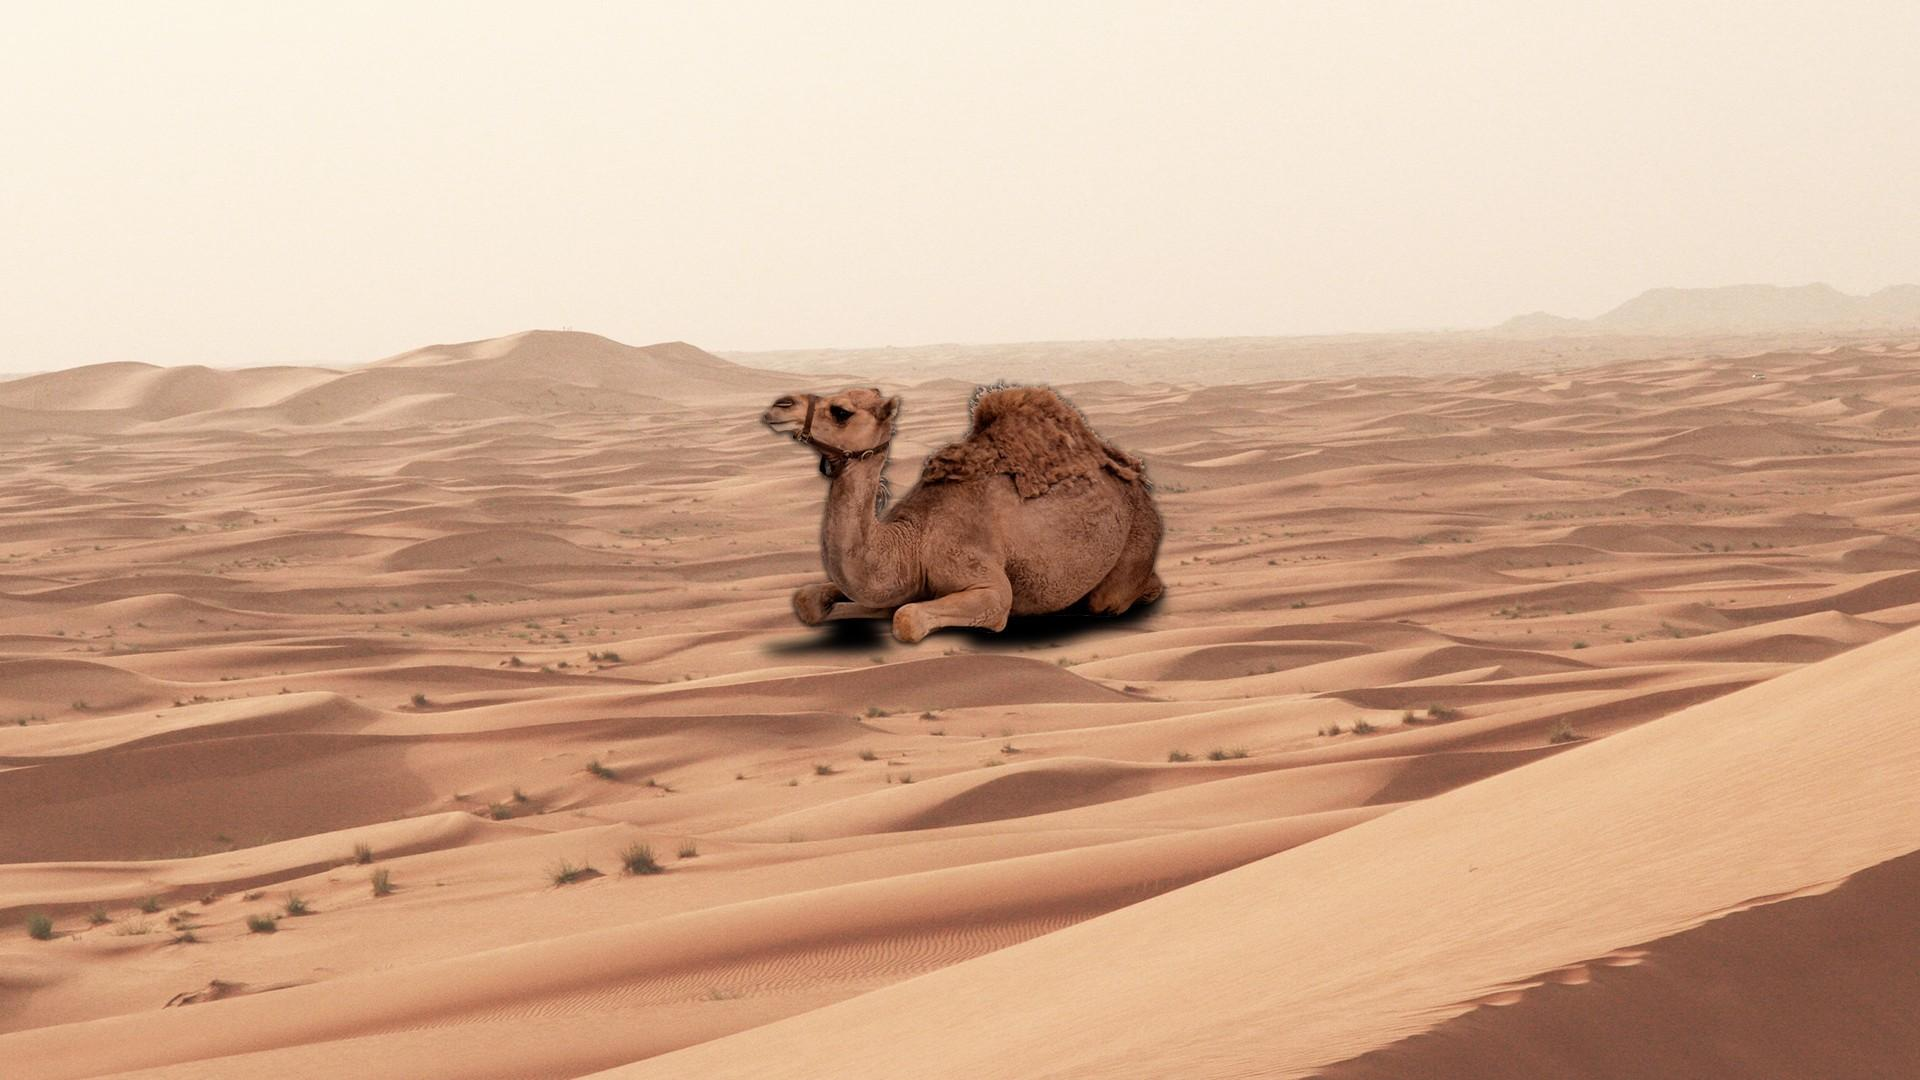 Camel Backgrounds Wallpapers 29010